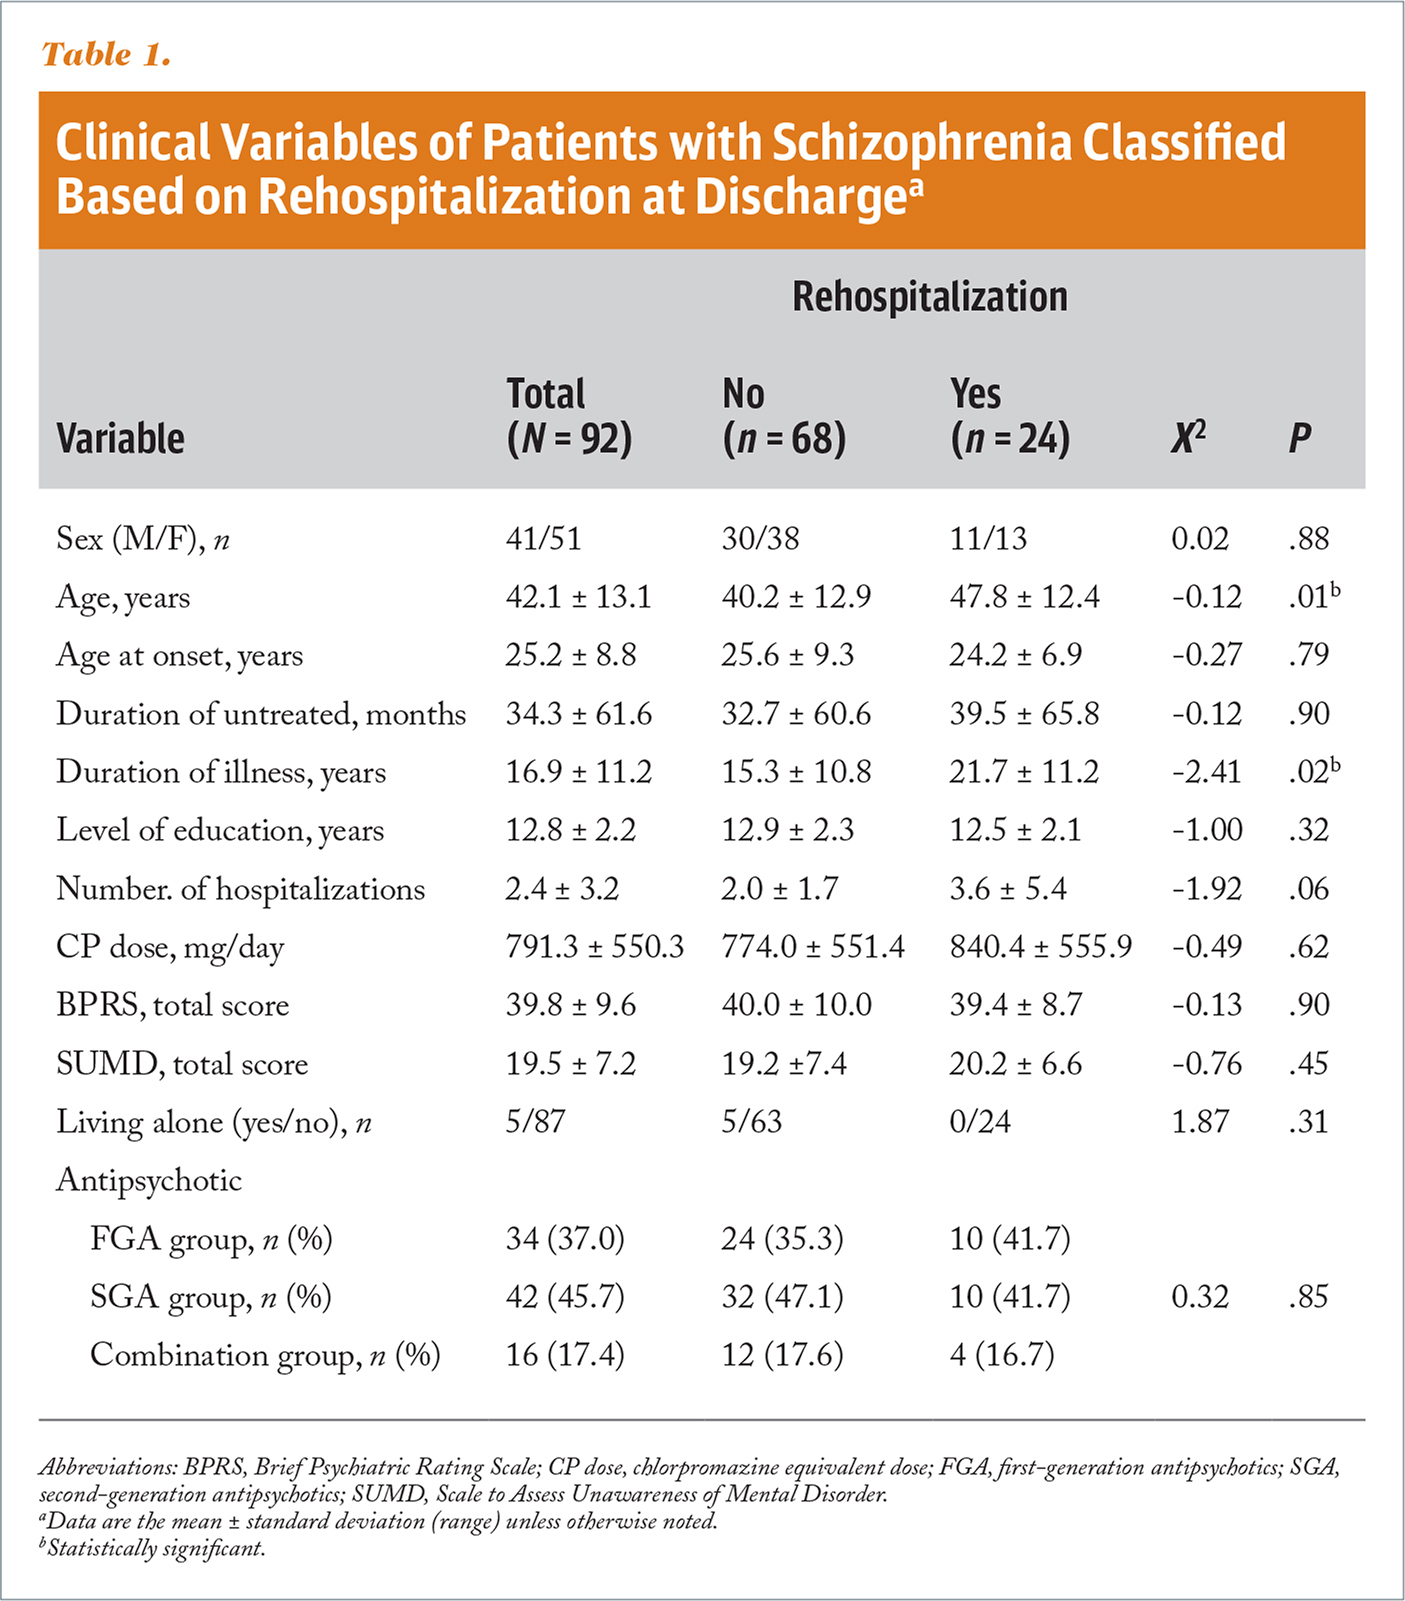 Clinical Variables of Patients with Schizophrenia Classified Based on Rehospitalization at Dischargea